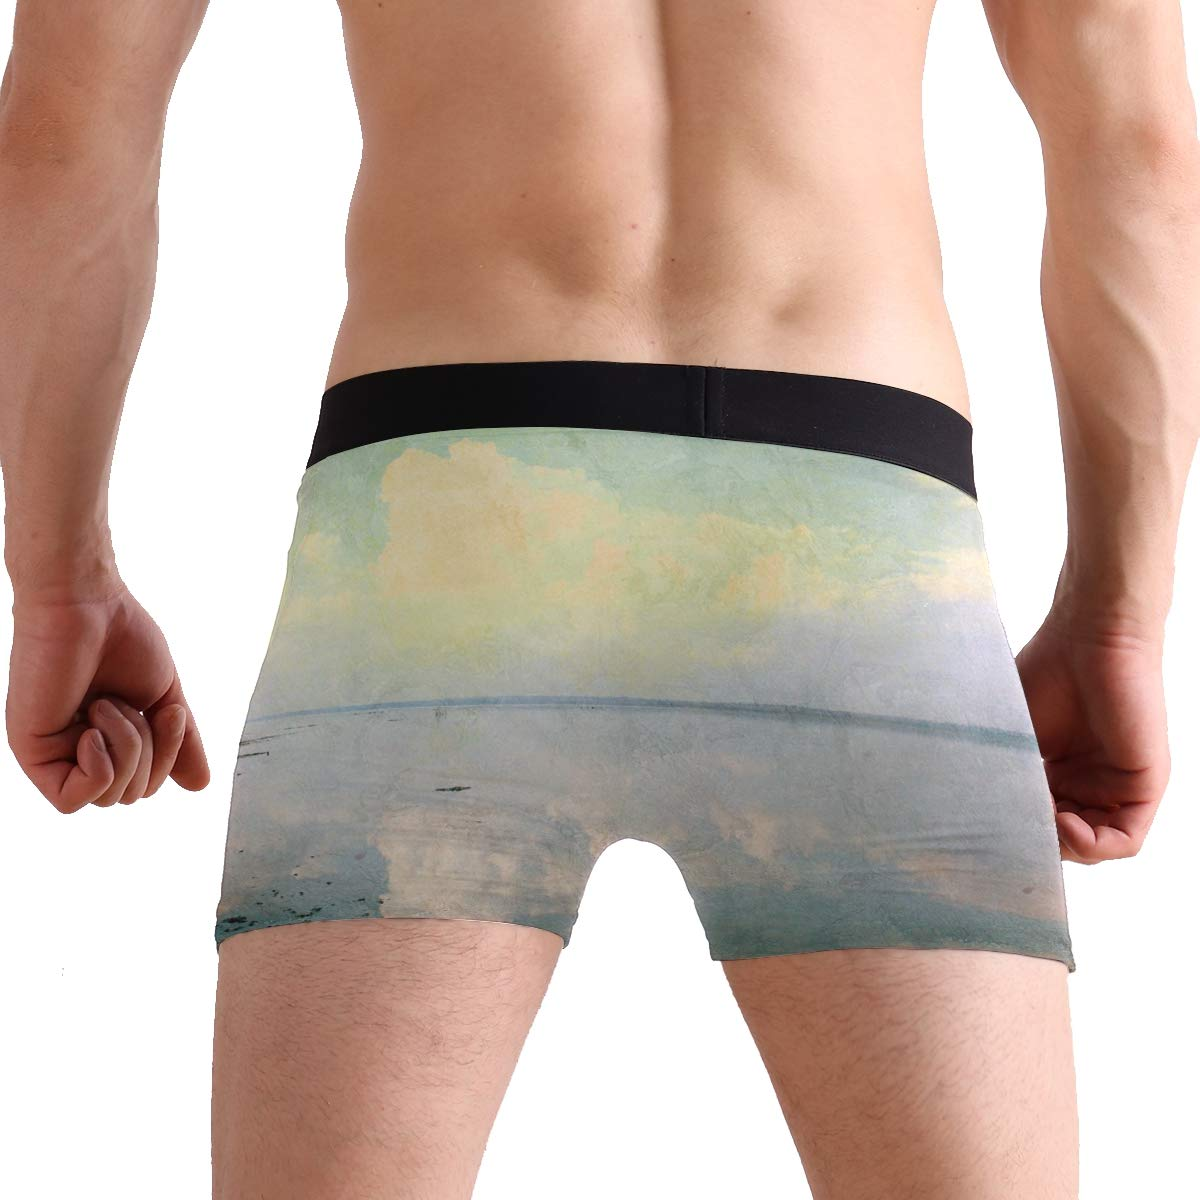 Hipster Unique Grunge Sea View Old CyanBoxer Briefs Mens Underwear Boys Breathable Stretch Low Rise Trunks